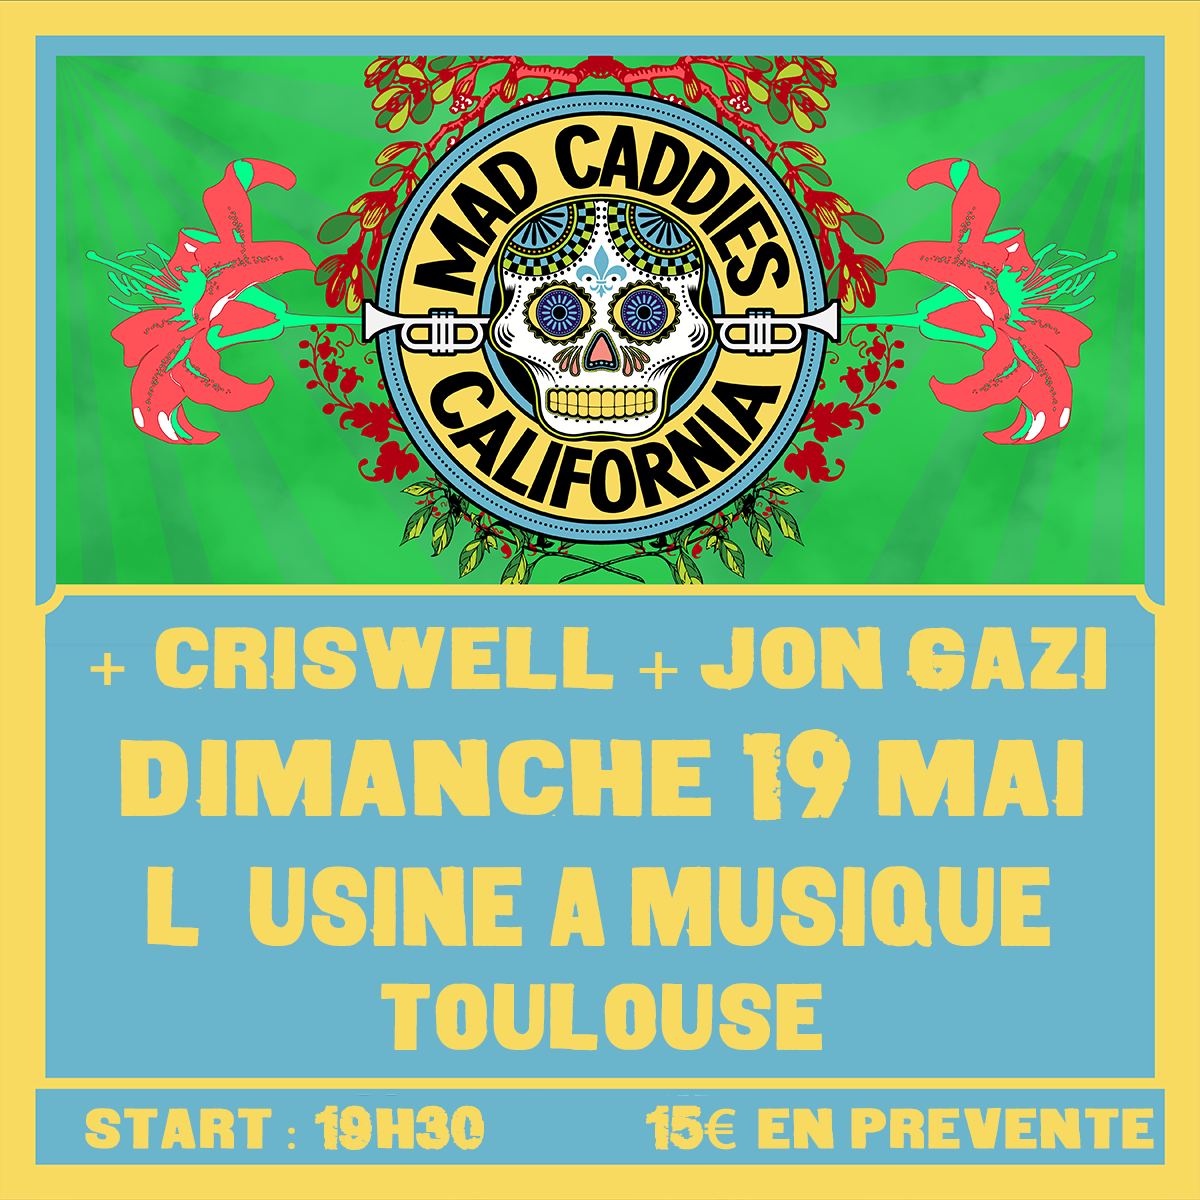 Mad Caddies + Criswell + Jon Gazi